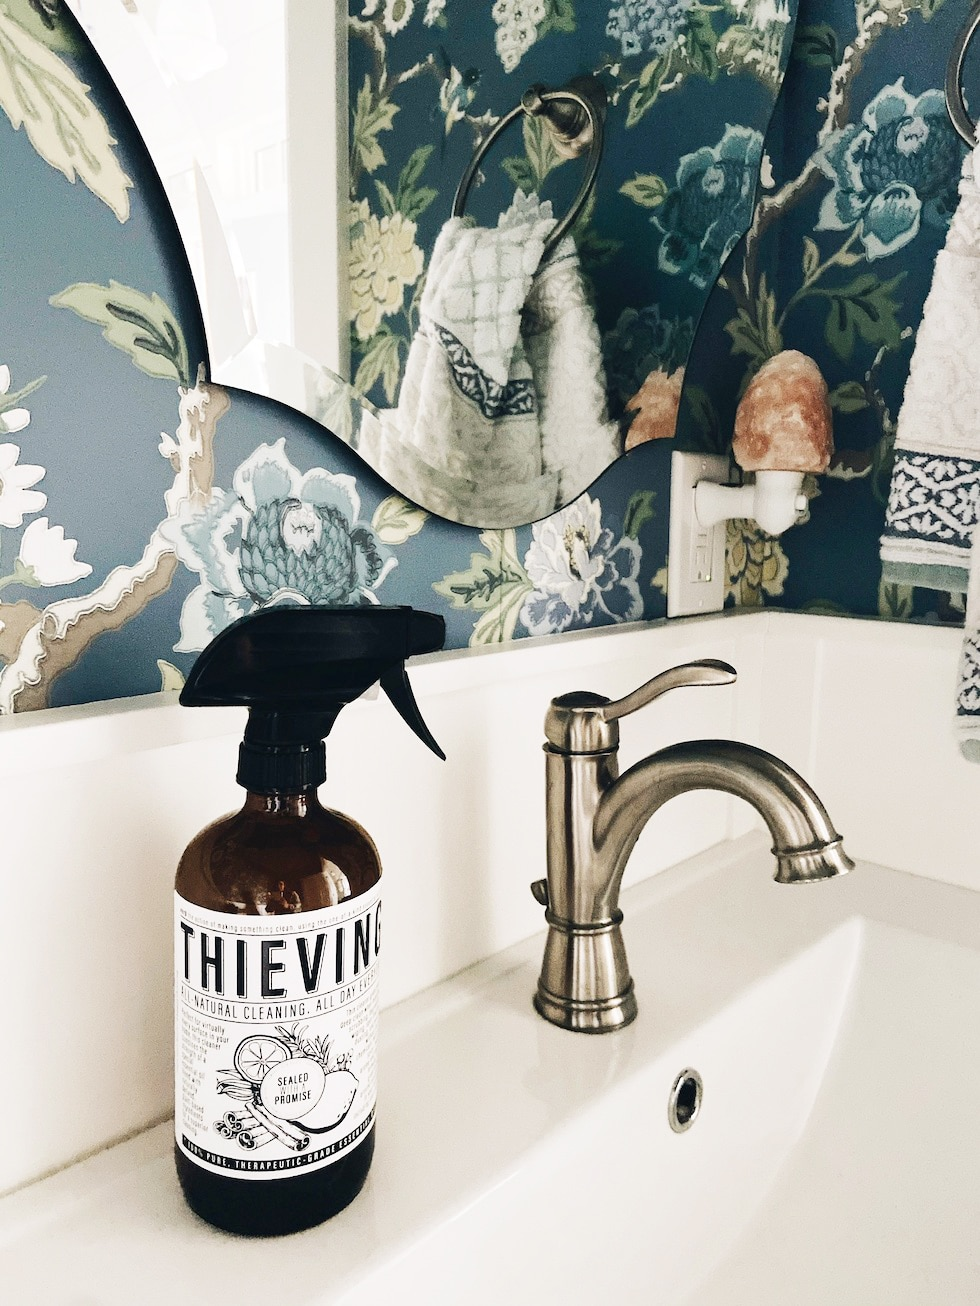 My Top 10 Must-Have Toxin-Free Products From Young Living